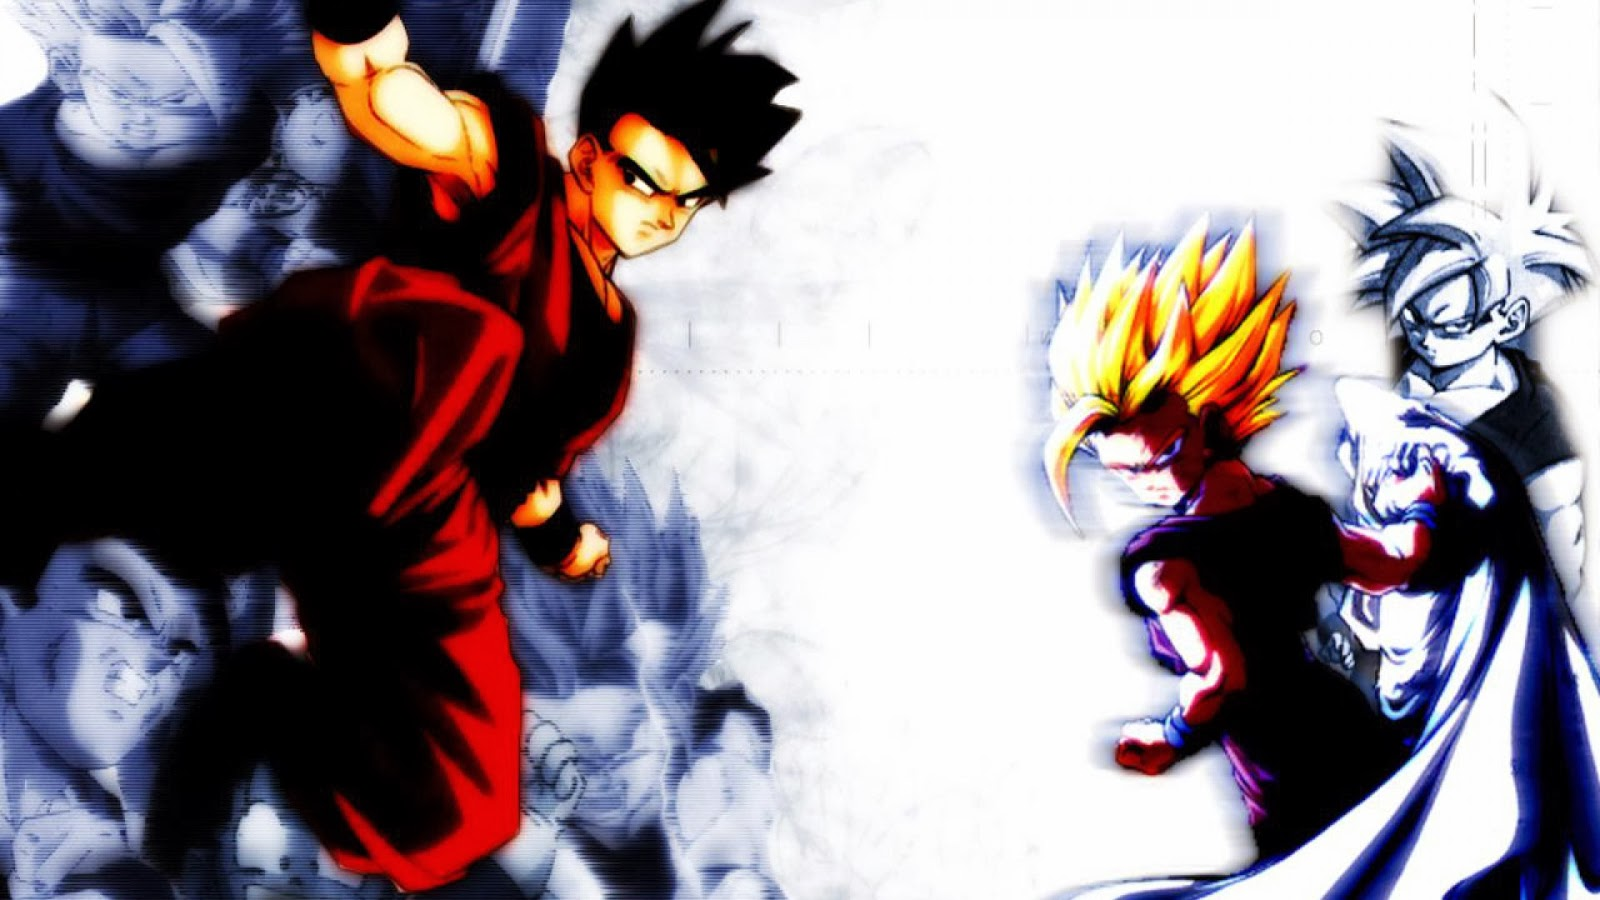 Dragon Ball Z Wallpaper 1920x1080